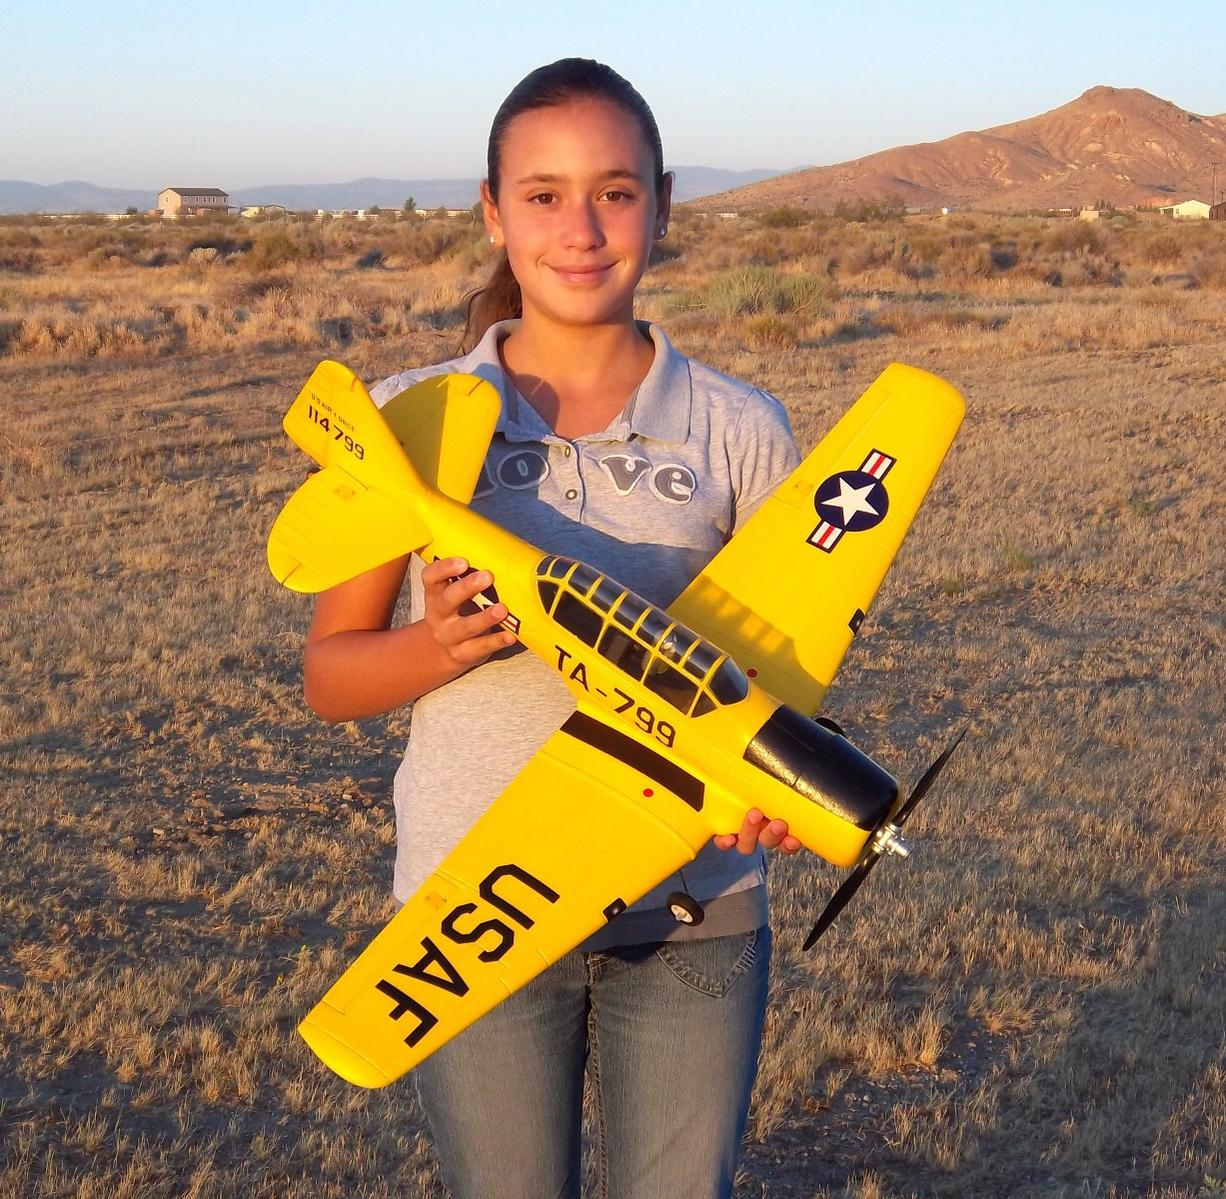 Name: Airfield 800mm AT-6 016.jpg Views: 611 Size: 281.6 KB Description: My daughter Evelyn holding the Airfield 800mm AT-6 Texan